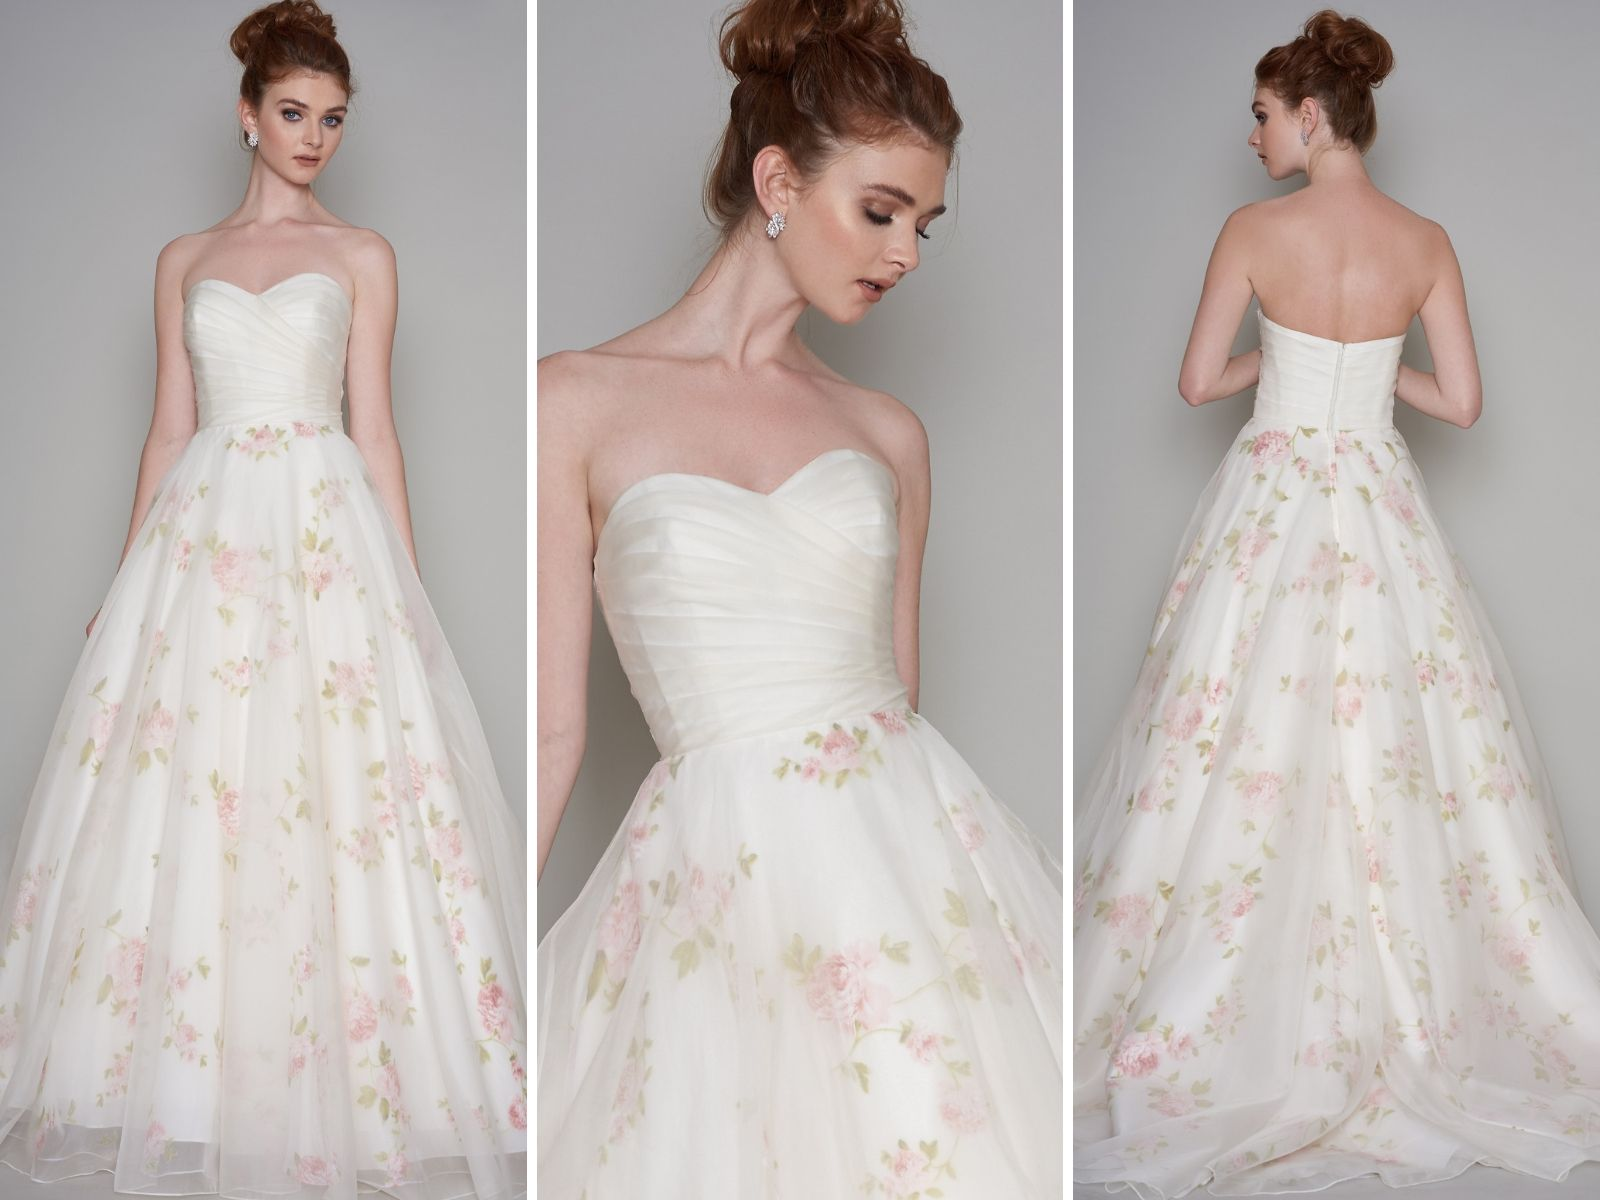 Rose print wedding dress for brides with an hourglass shape